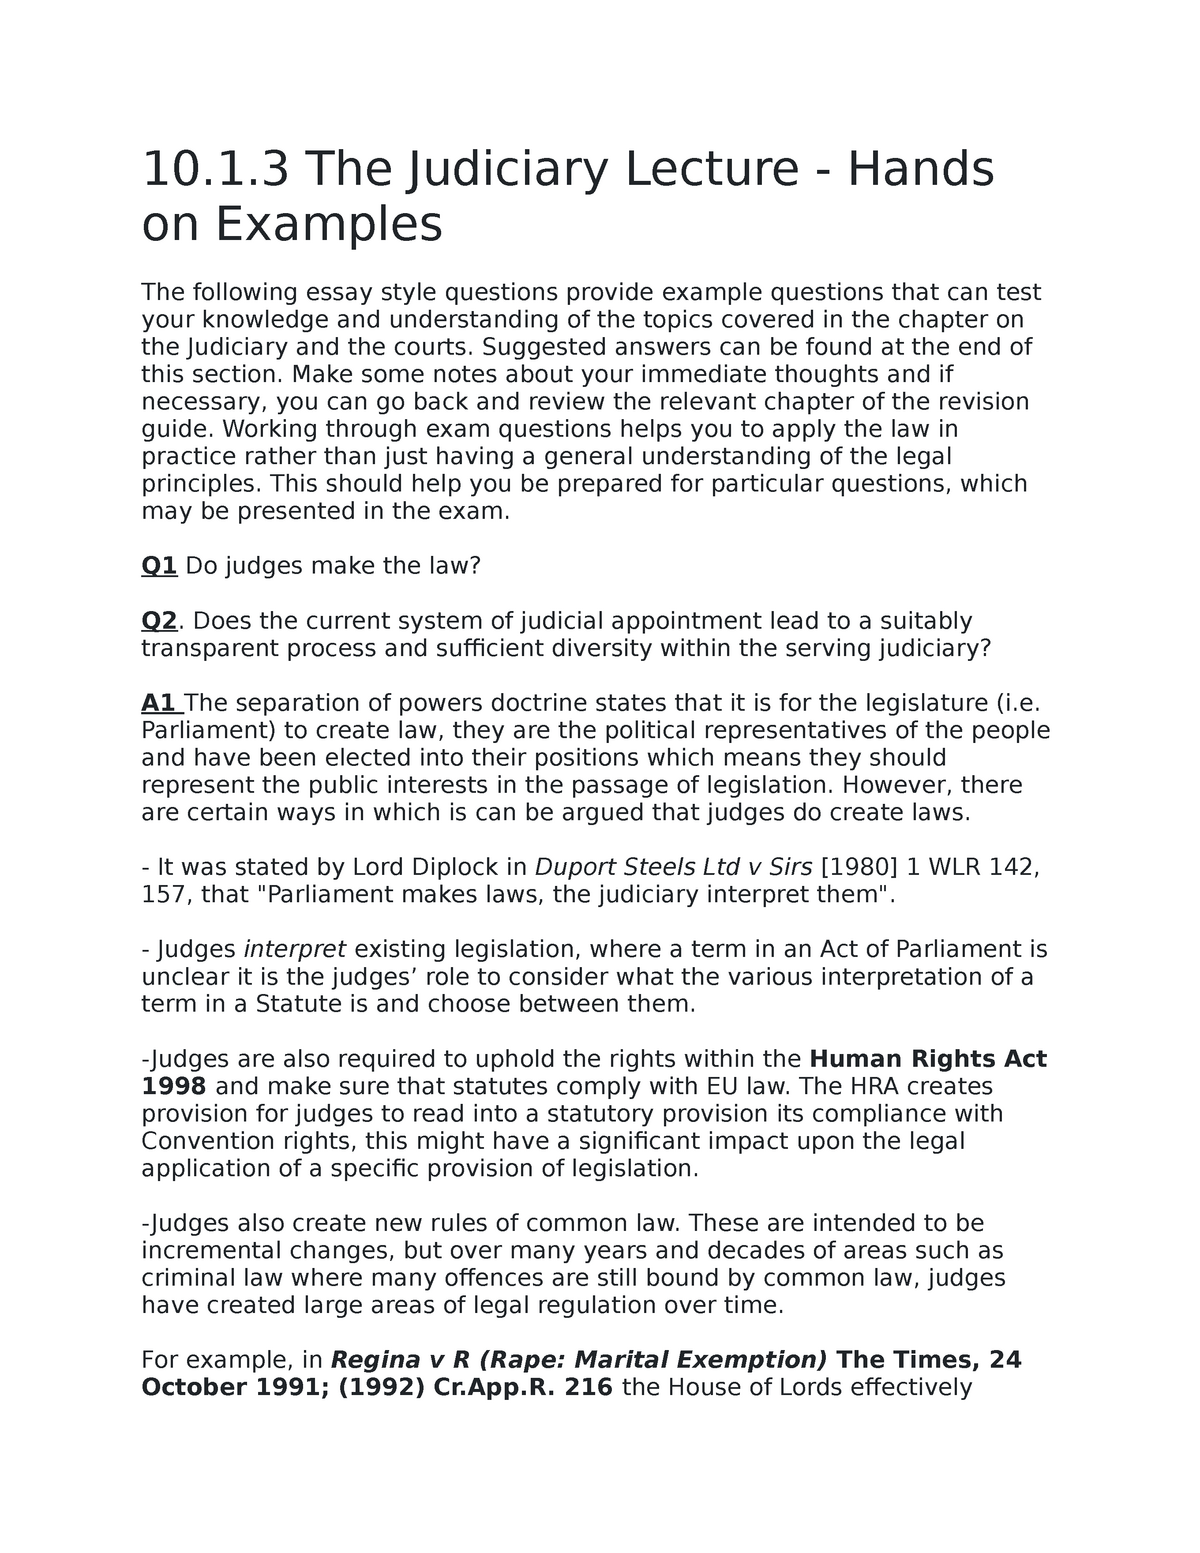 The Human Rights Act Judiciary Lecture Examples - Copy - LLB